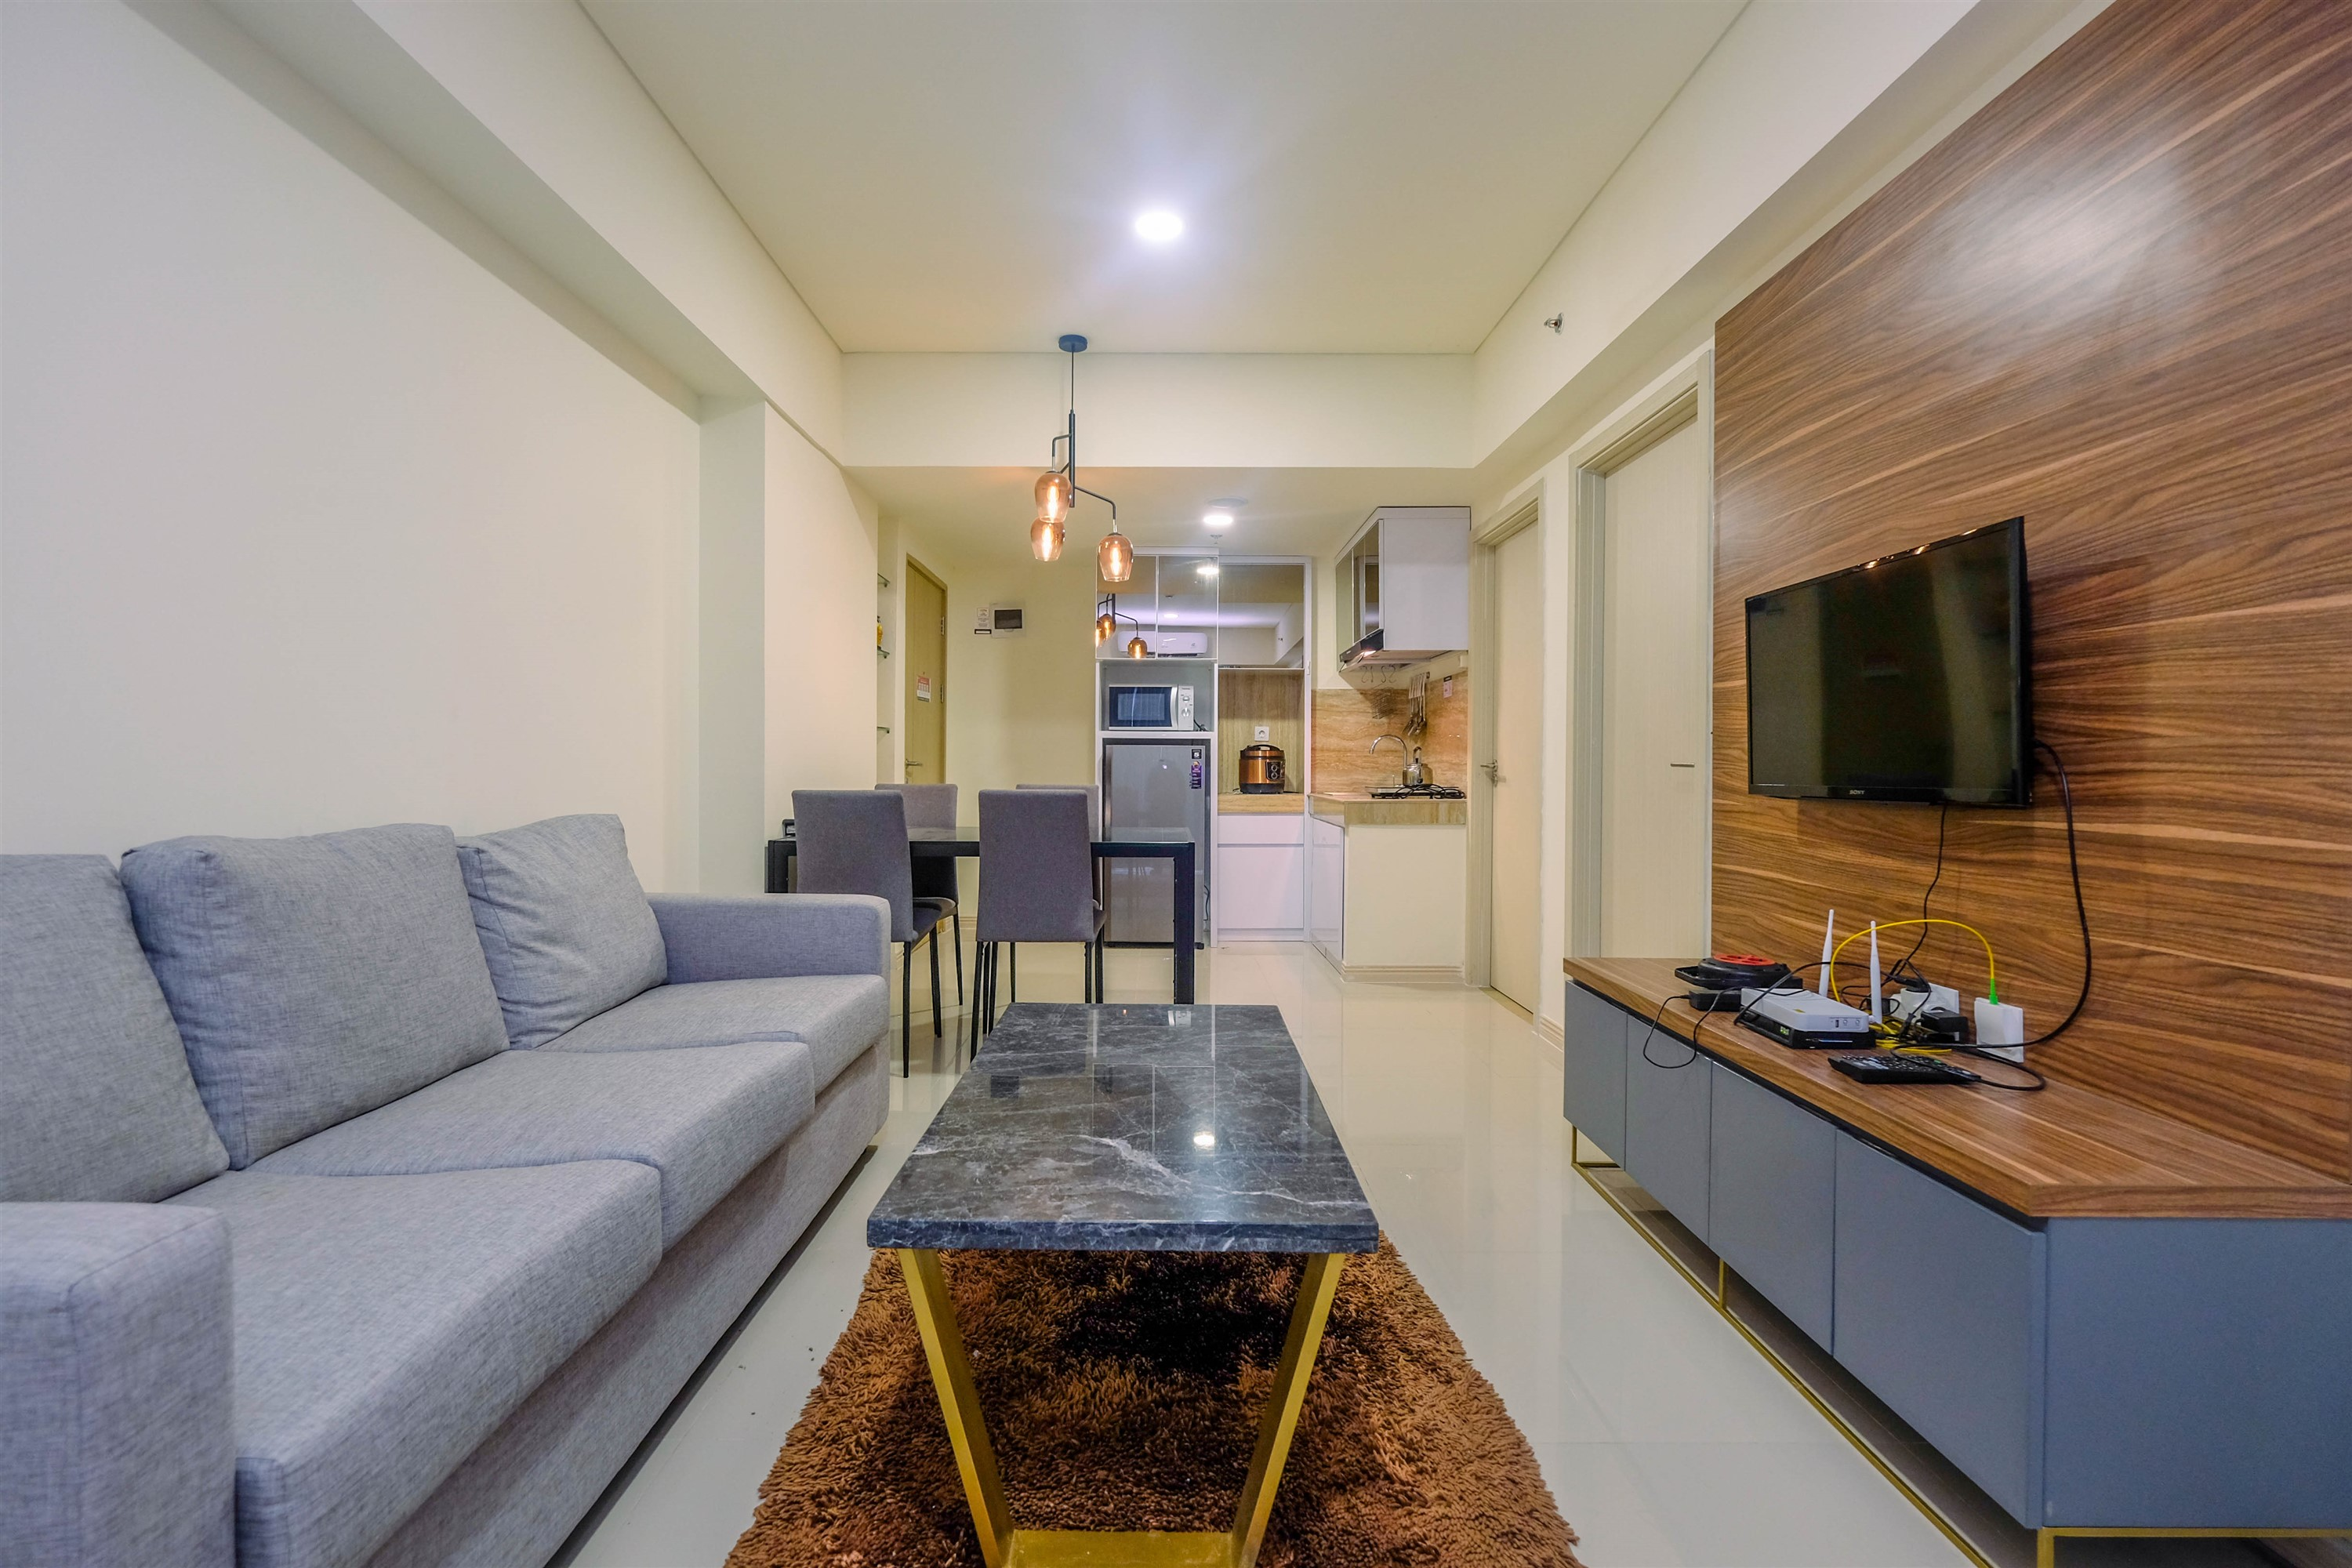 Comfort and Strategic 3BR Meikarta Apartment By Travelio, Cikarang